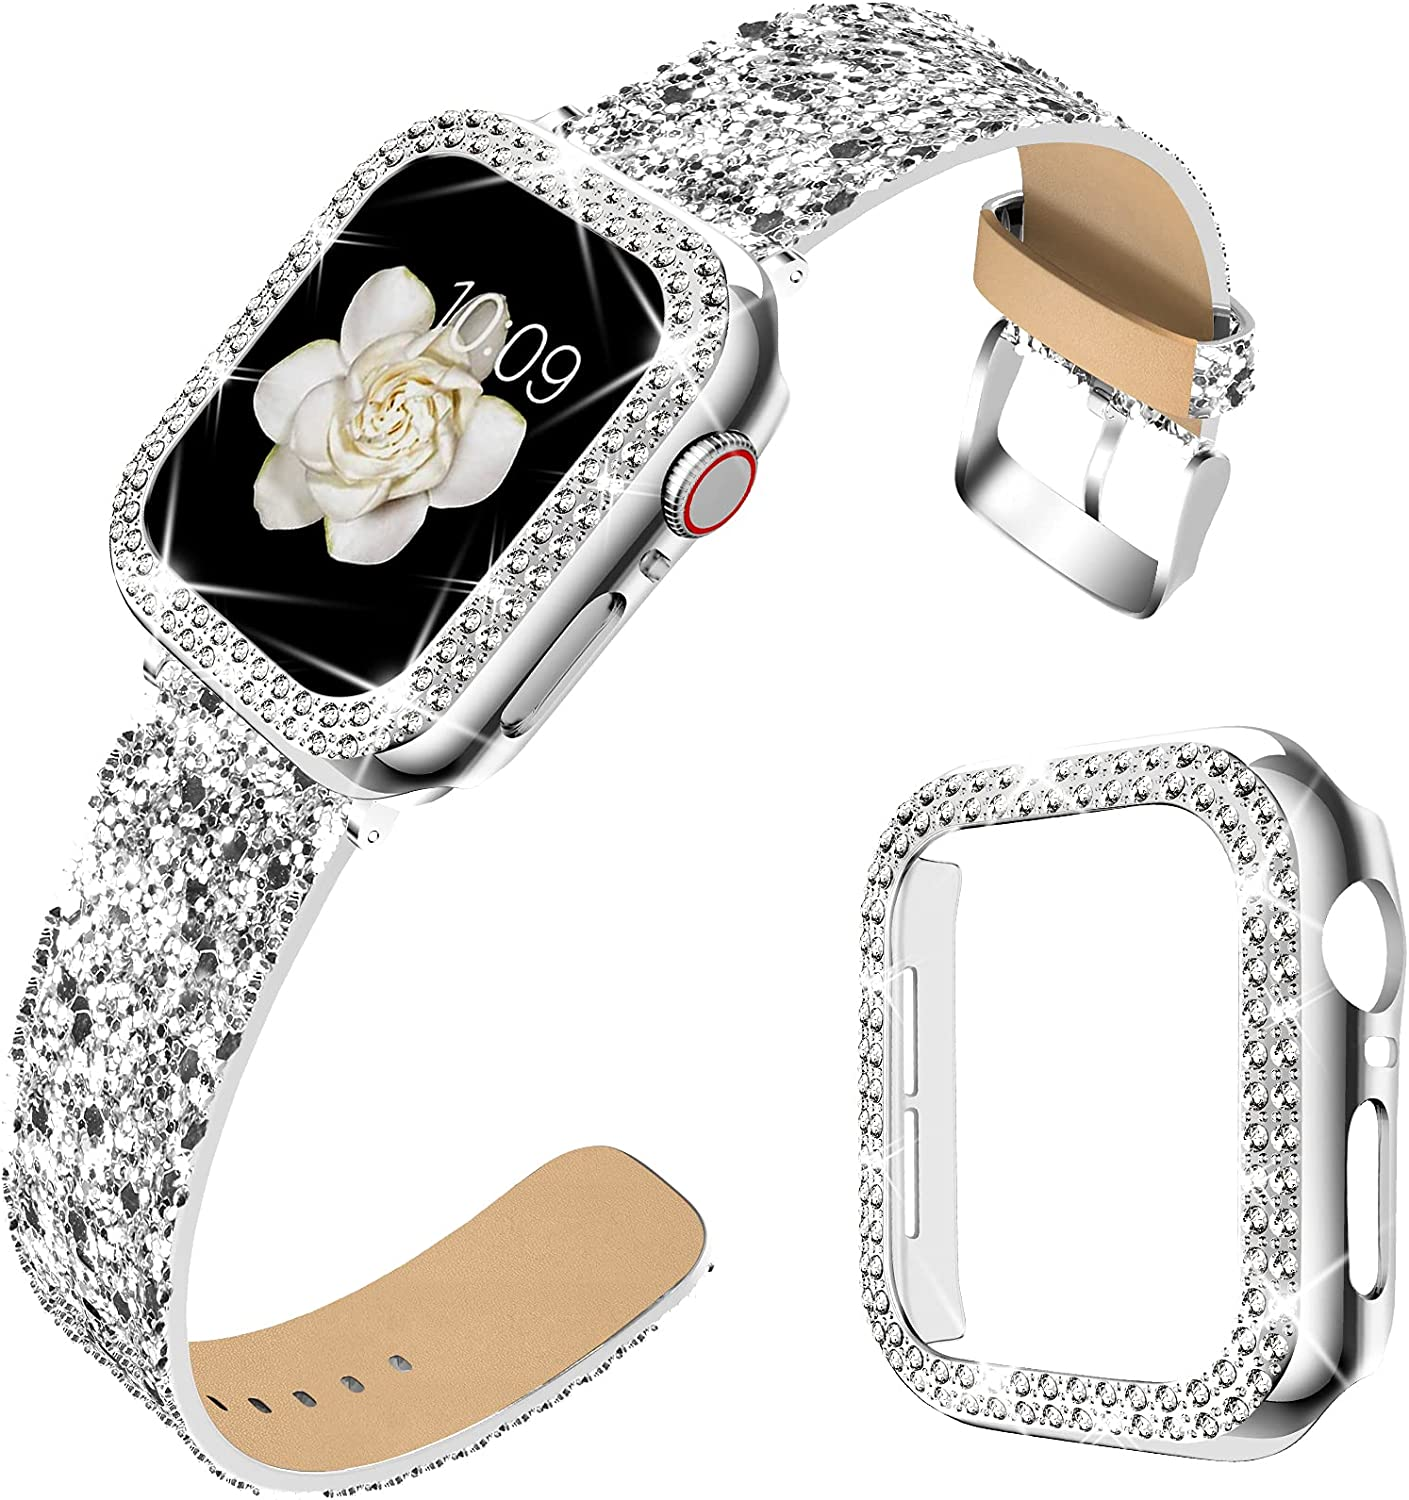 DABAOZA Compatible for Apple Watch Band 40mm 44mm with Case, Bling Women Glitter Leather Strap Sparkle Replacement Wristband with Dressy Crystal Bumper Cover for SE iWatch Series 6 5 4